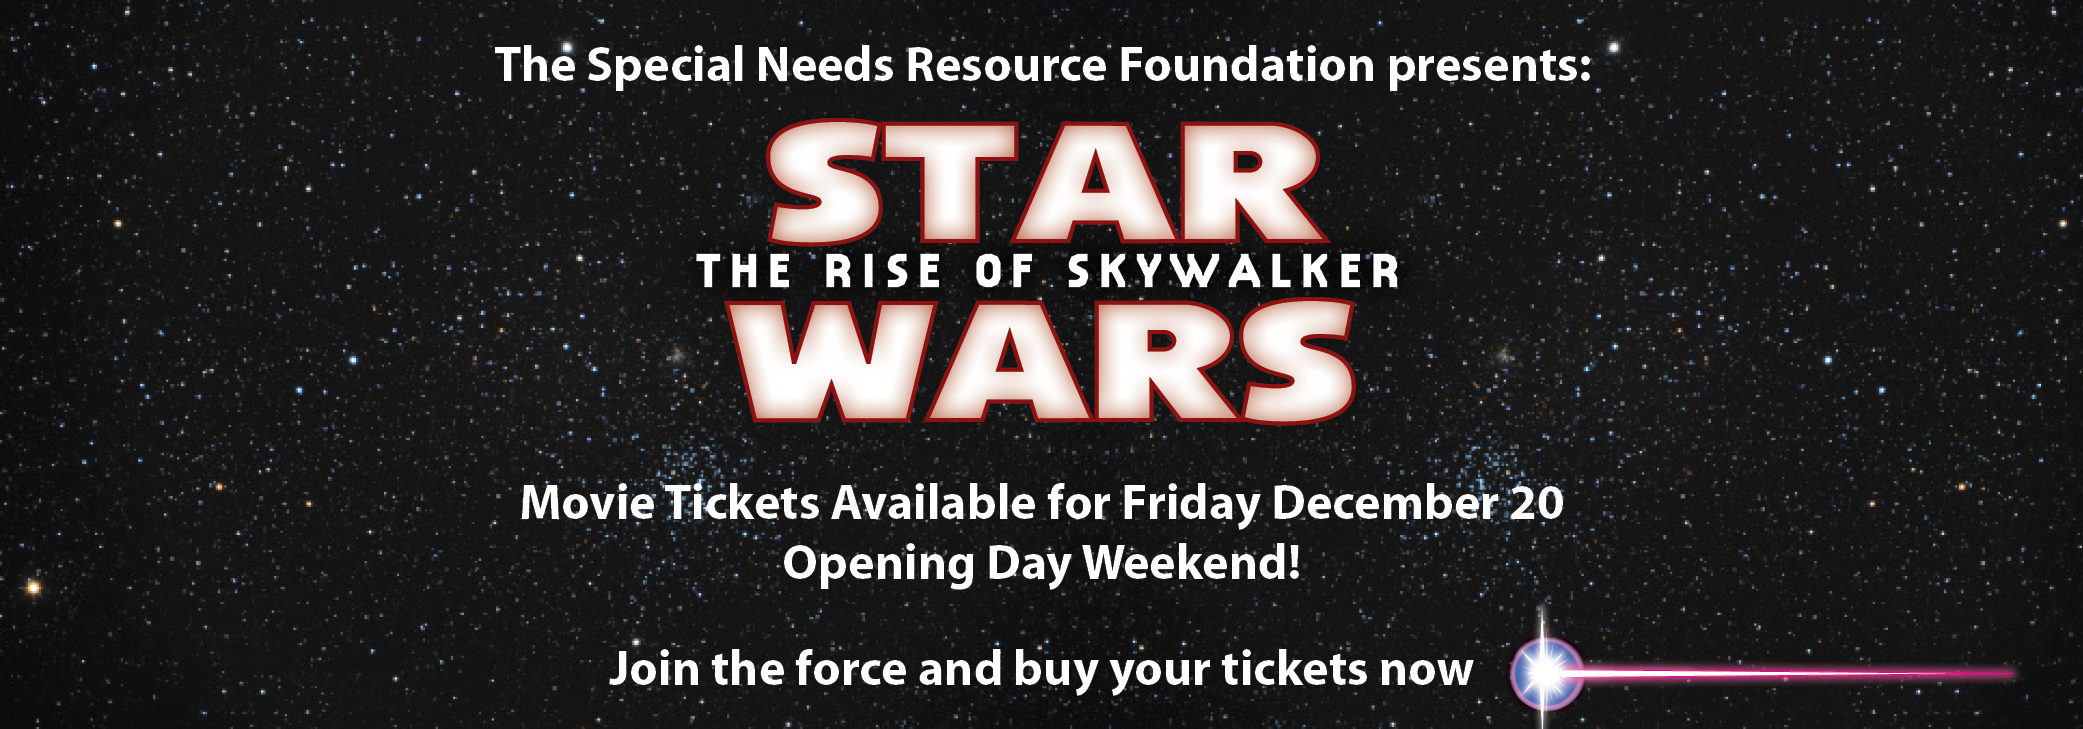 Star Wars: The Rise of Skywalker Movie Fundraiser